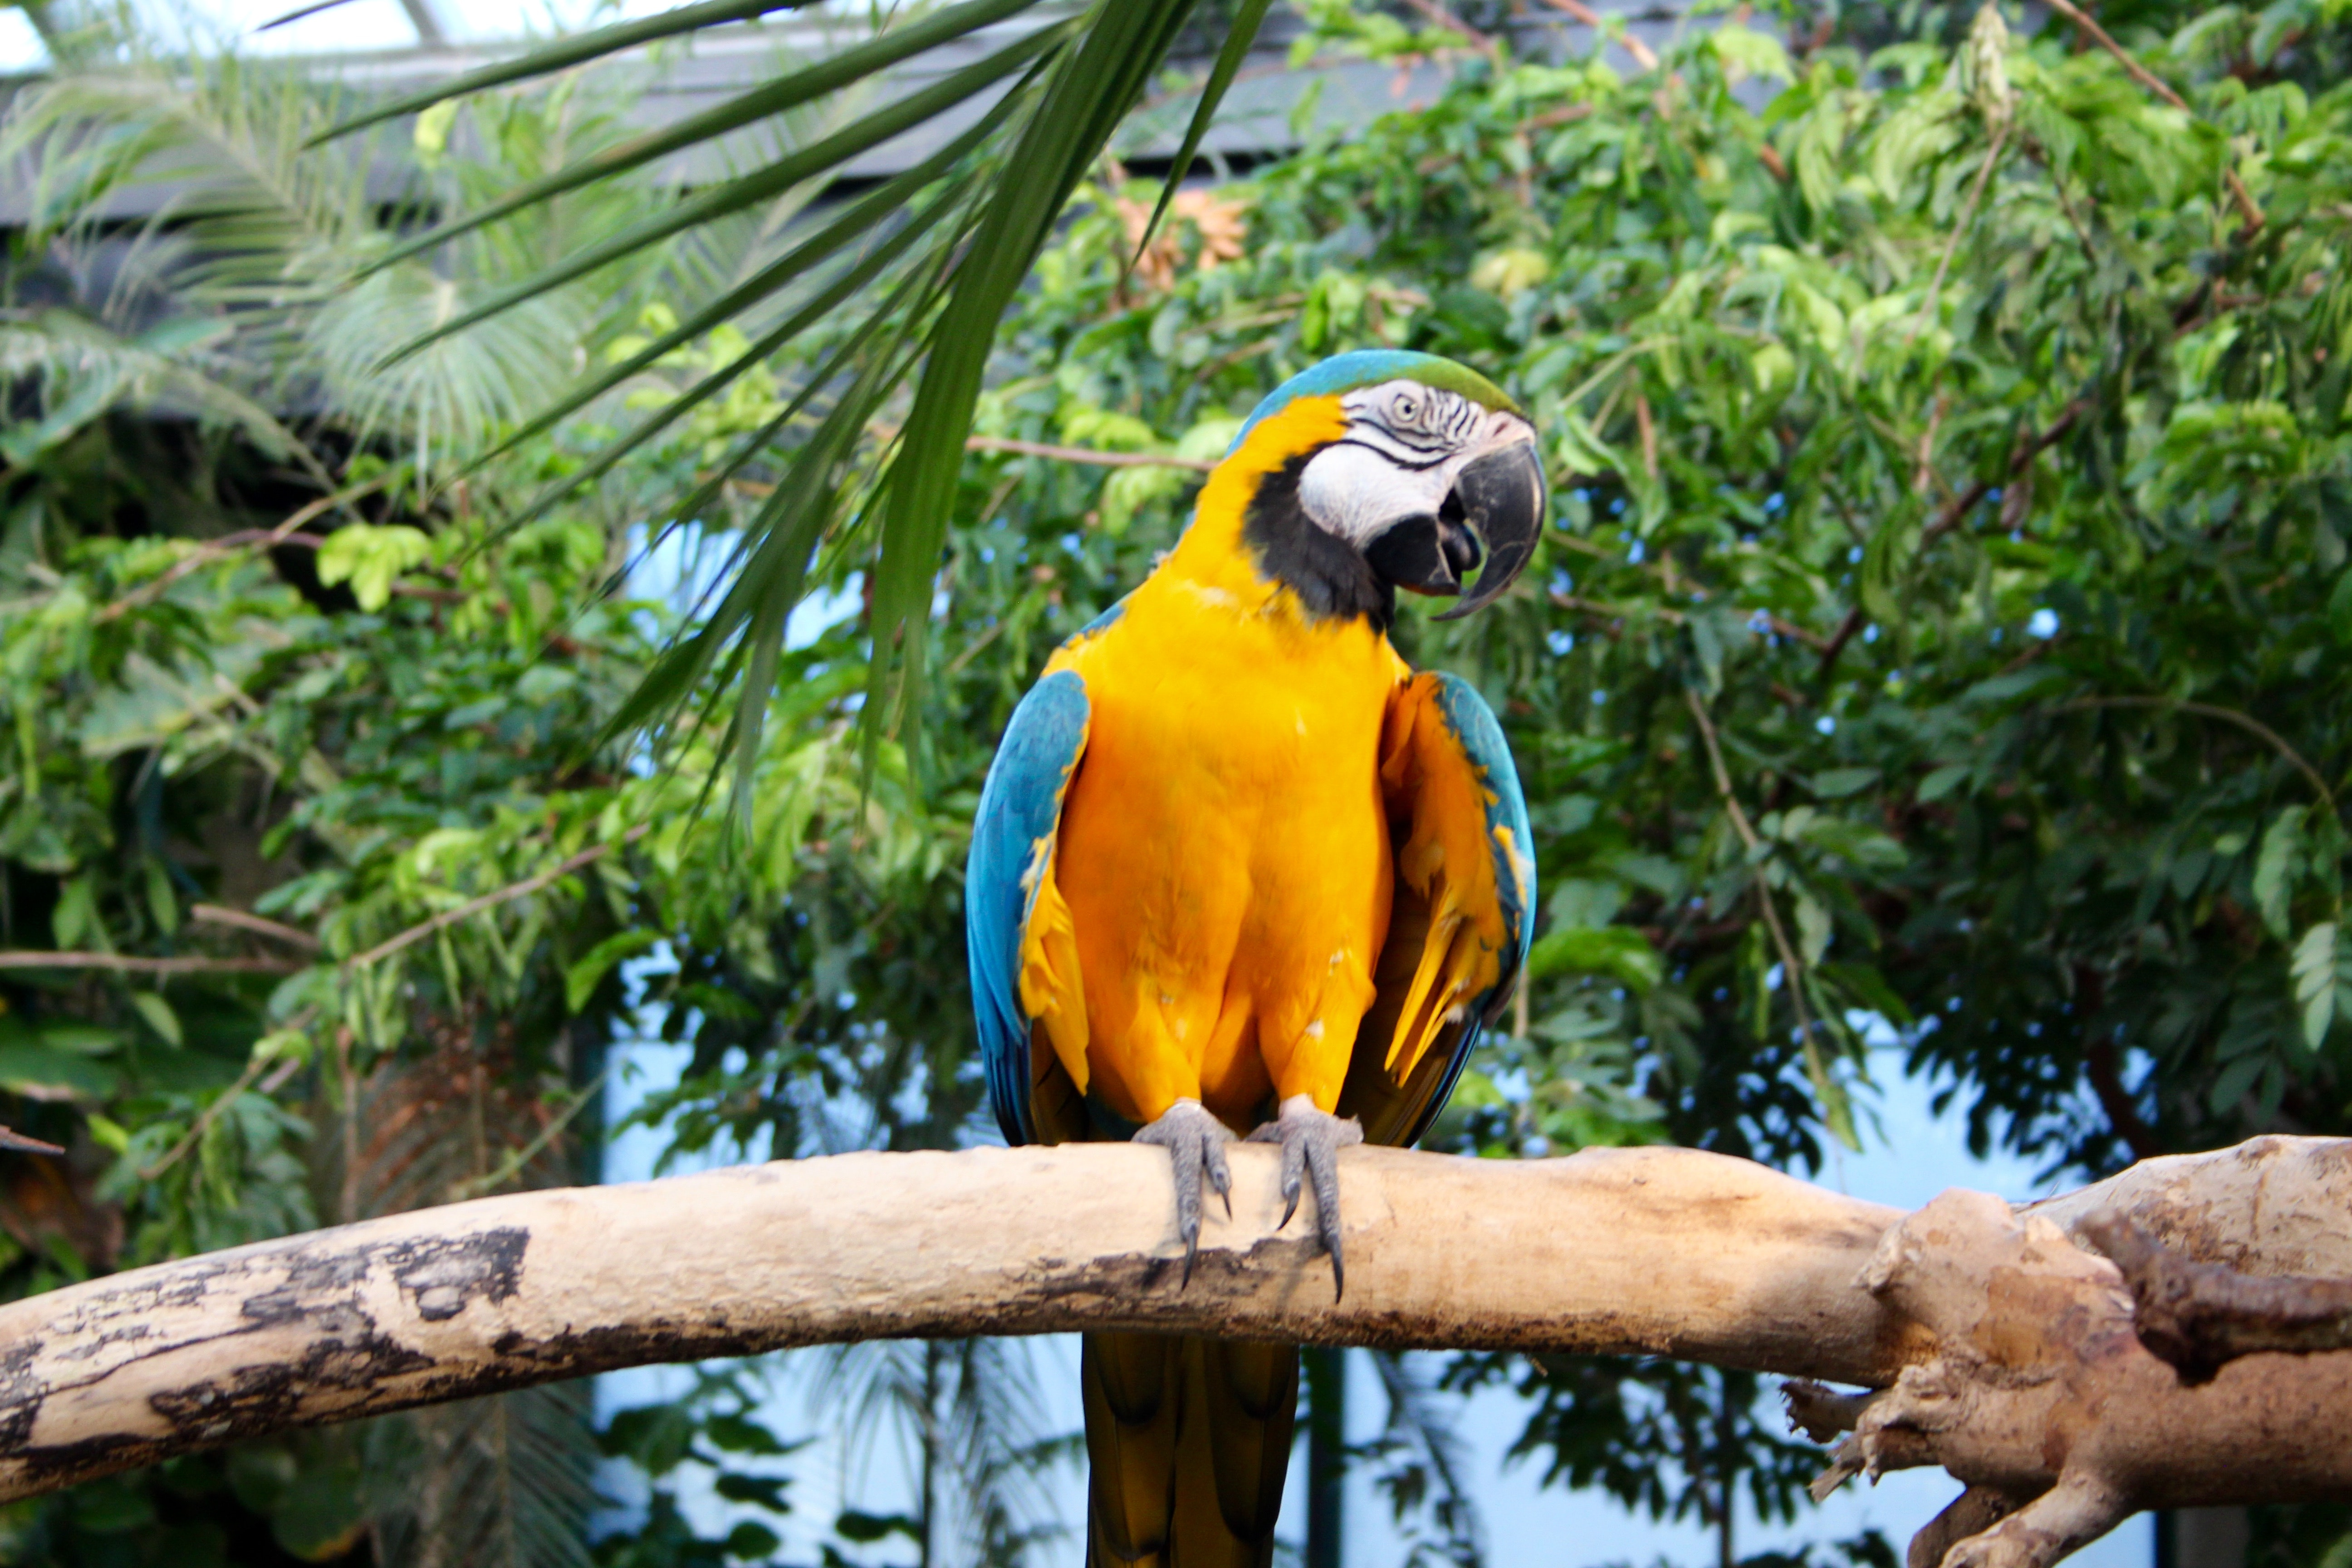 Yellow and blue parrot perched on tree photo